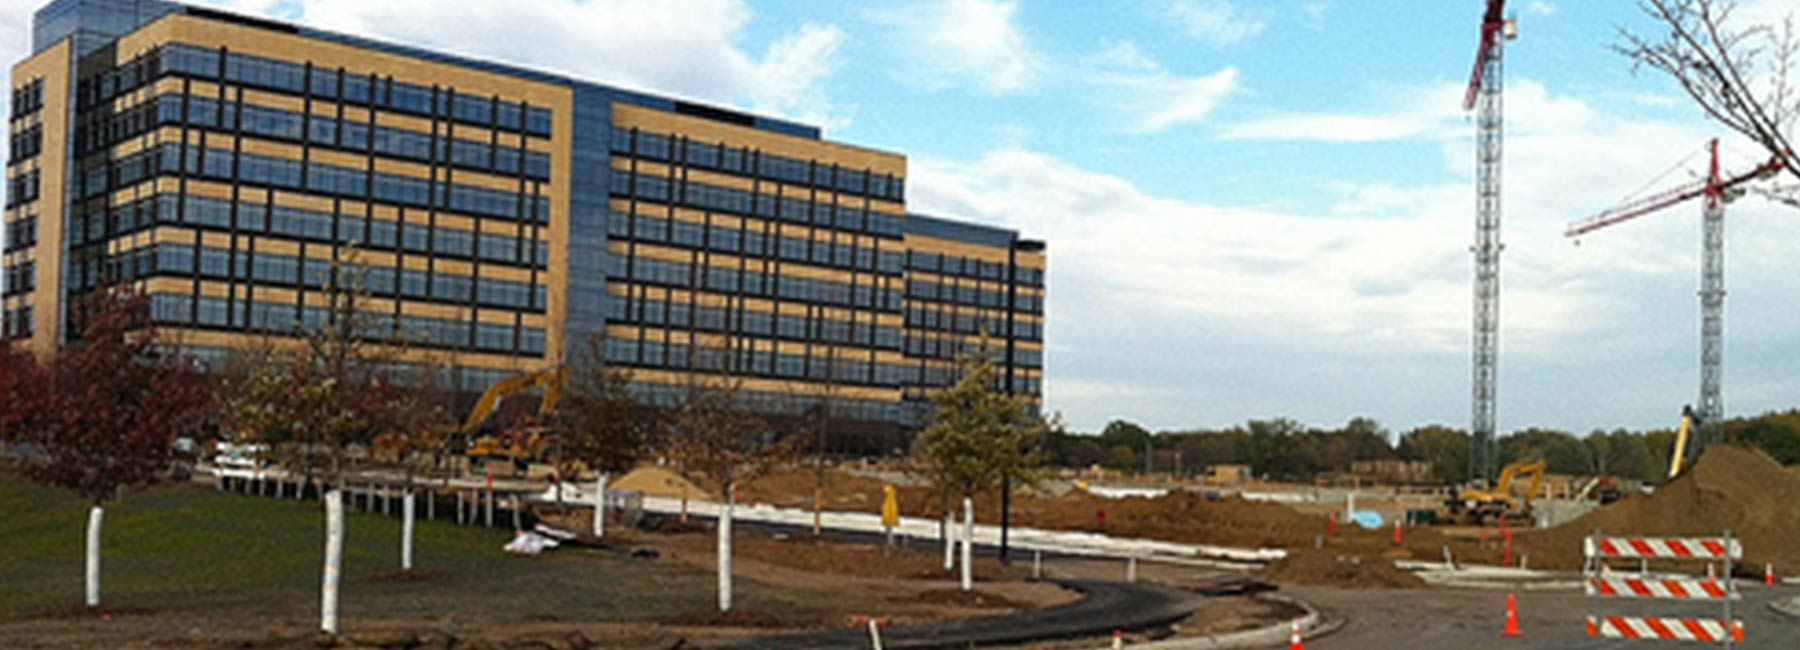 UnitedHealth Group Building - Enhanced Commissioning Services